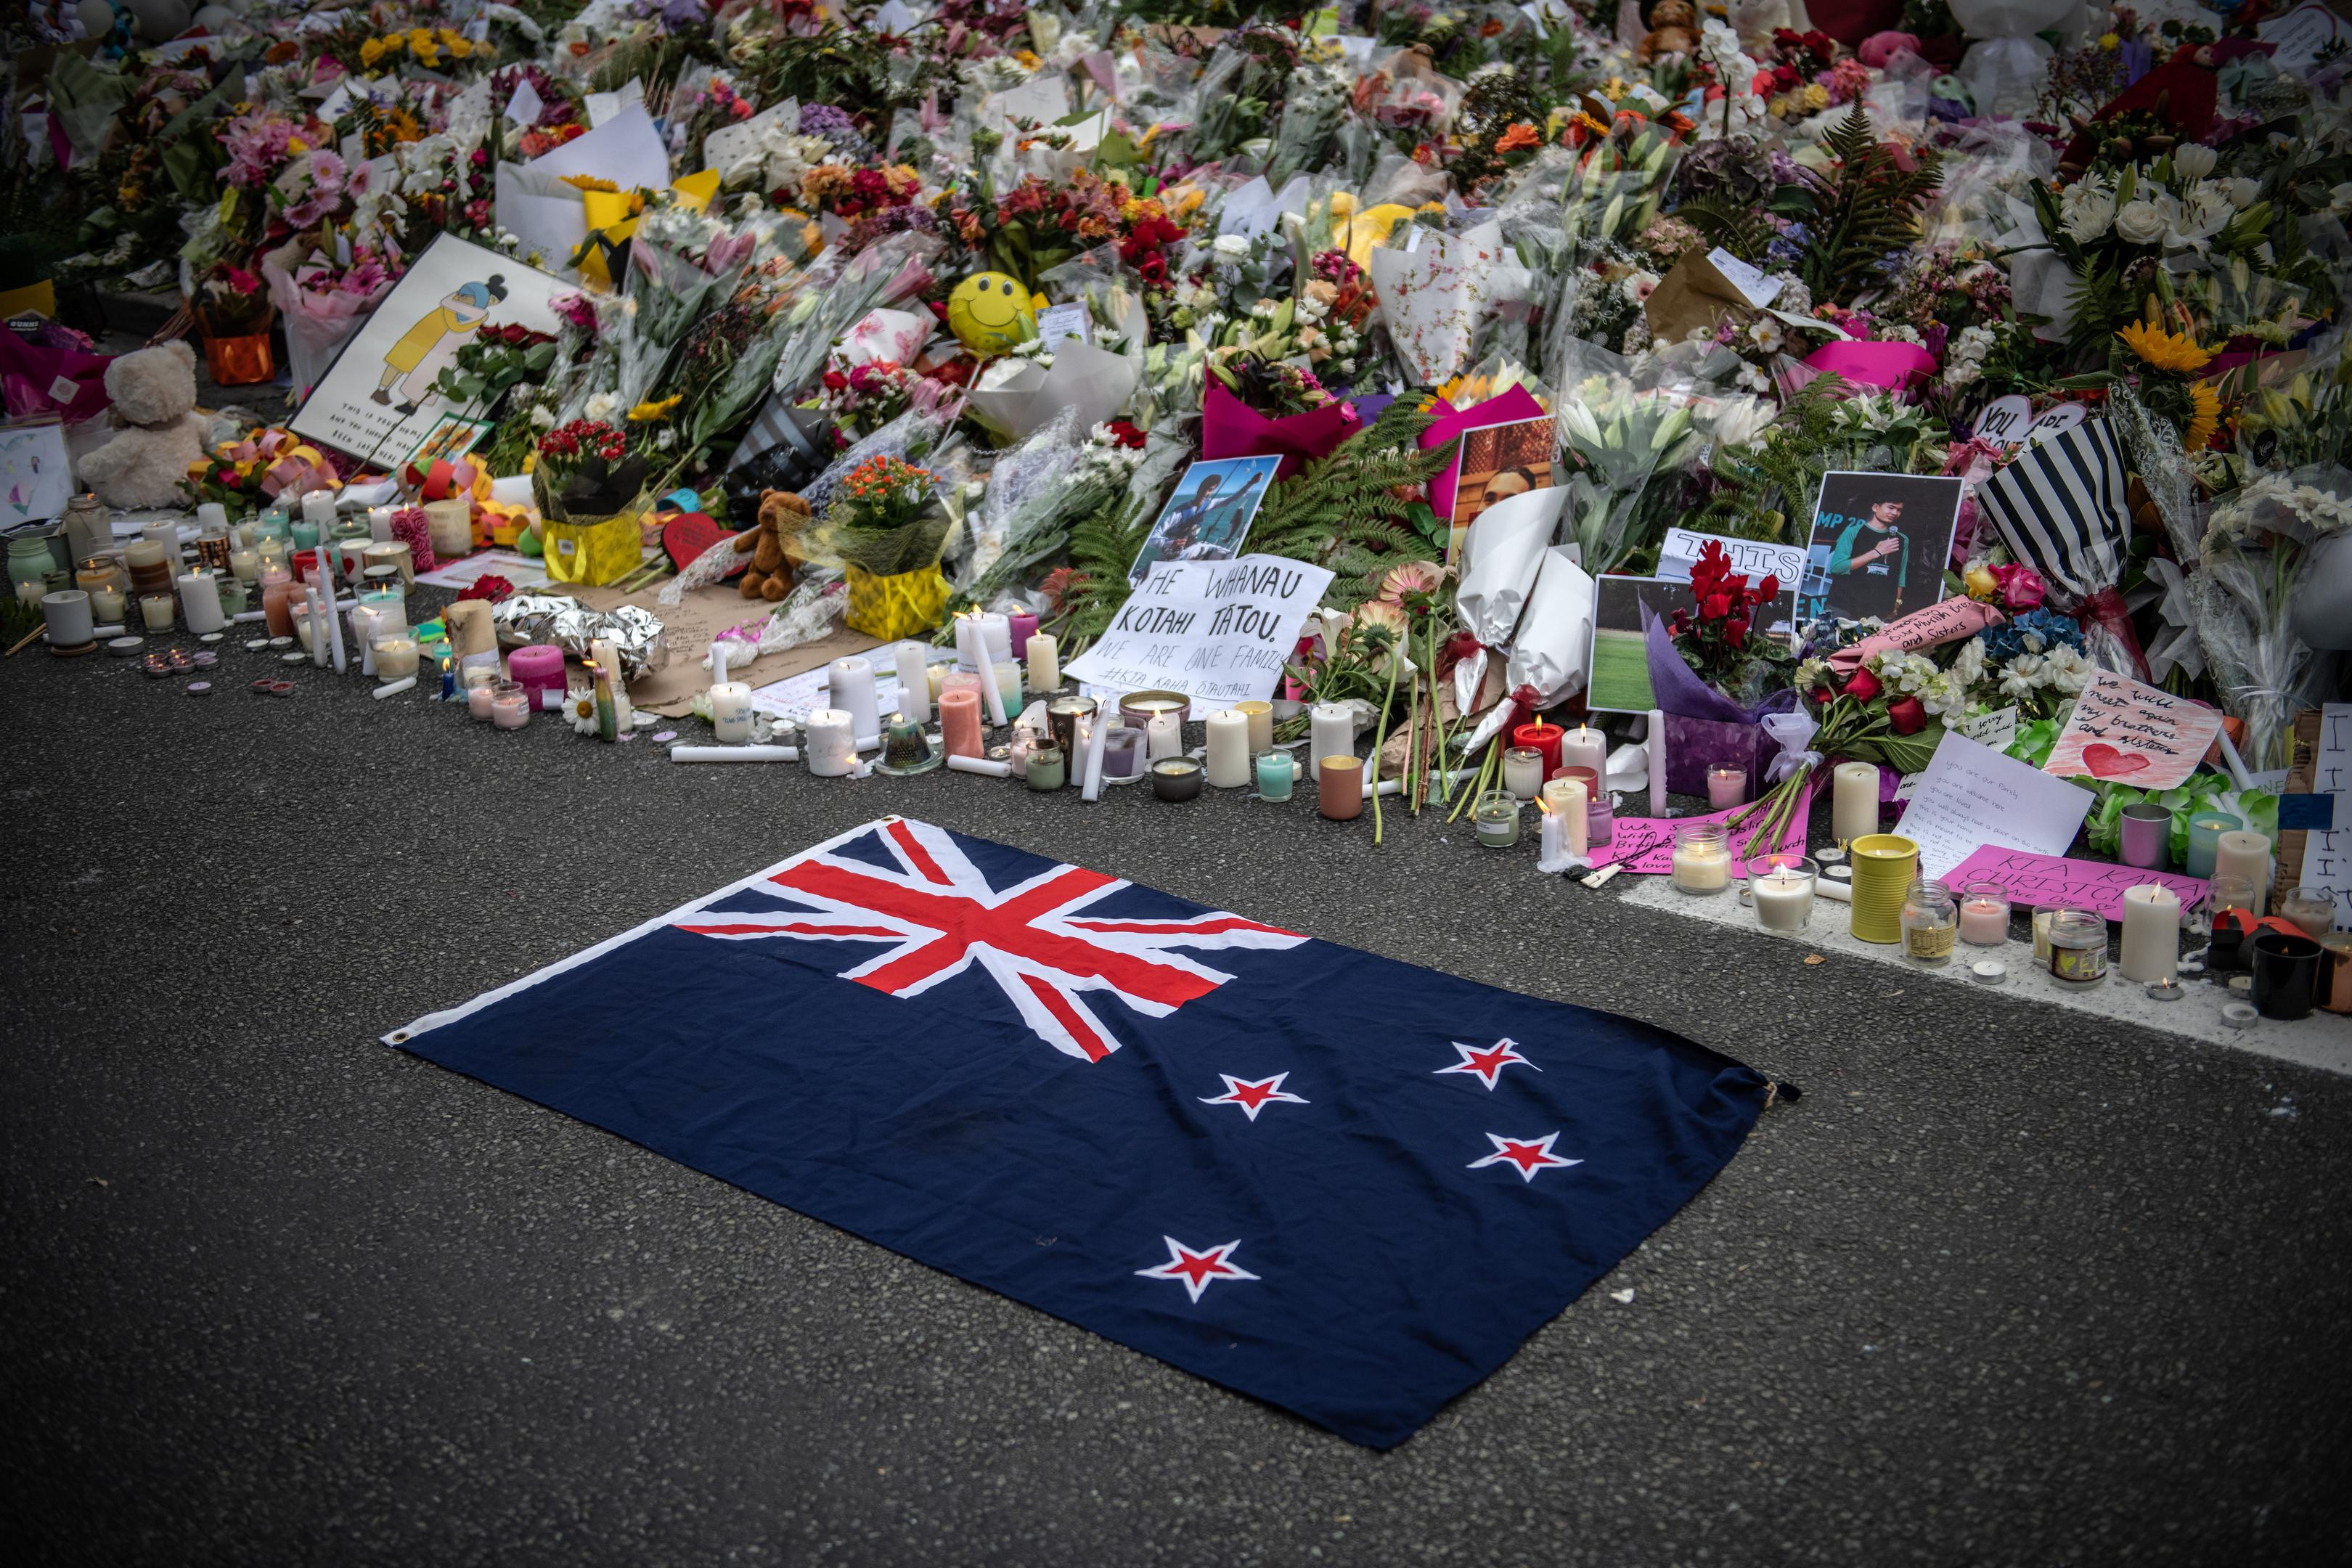 Christchurch Massacre Video Viewed 4,000 Times Before Being Removed From Facebook